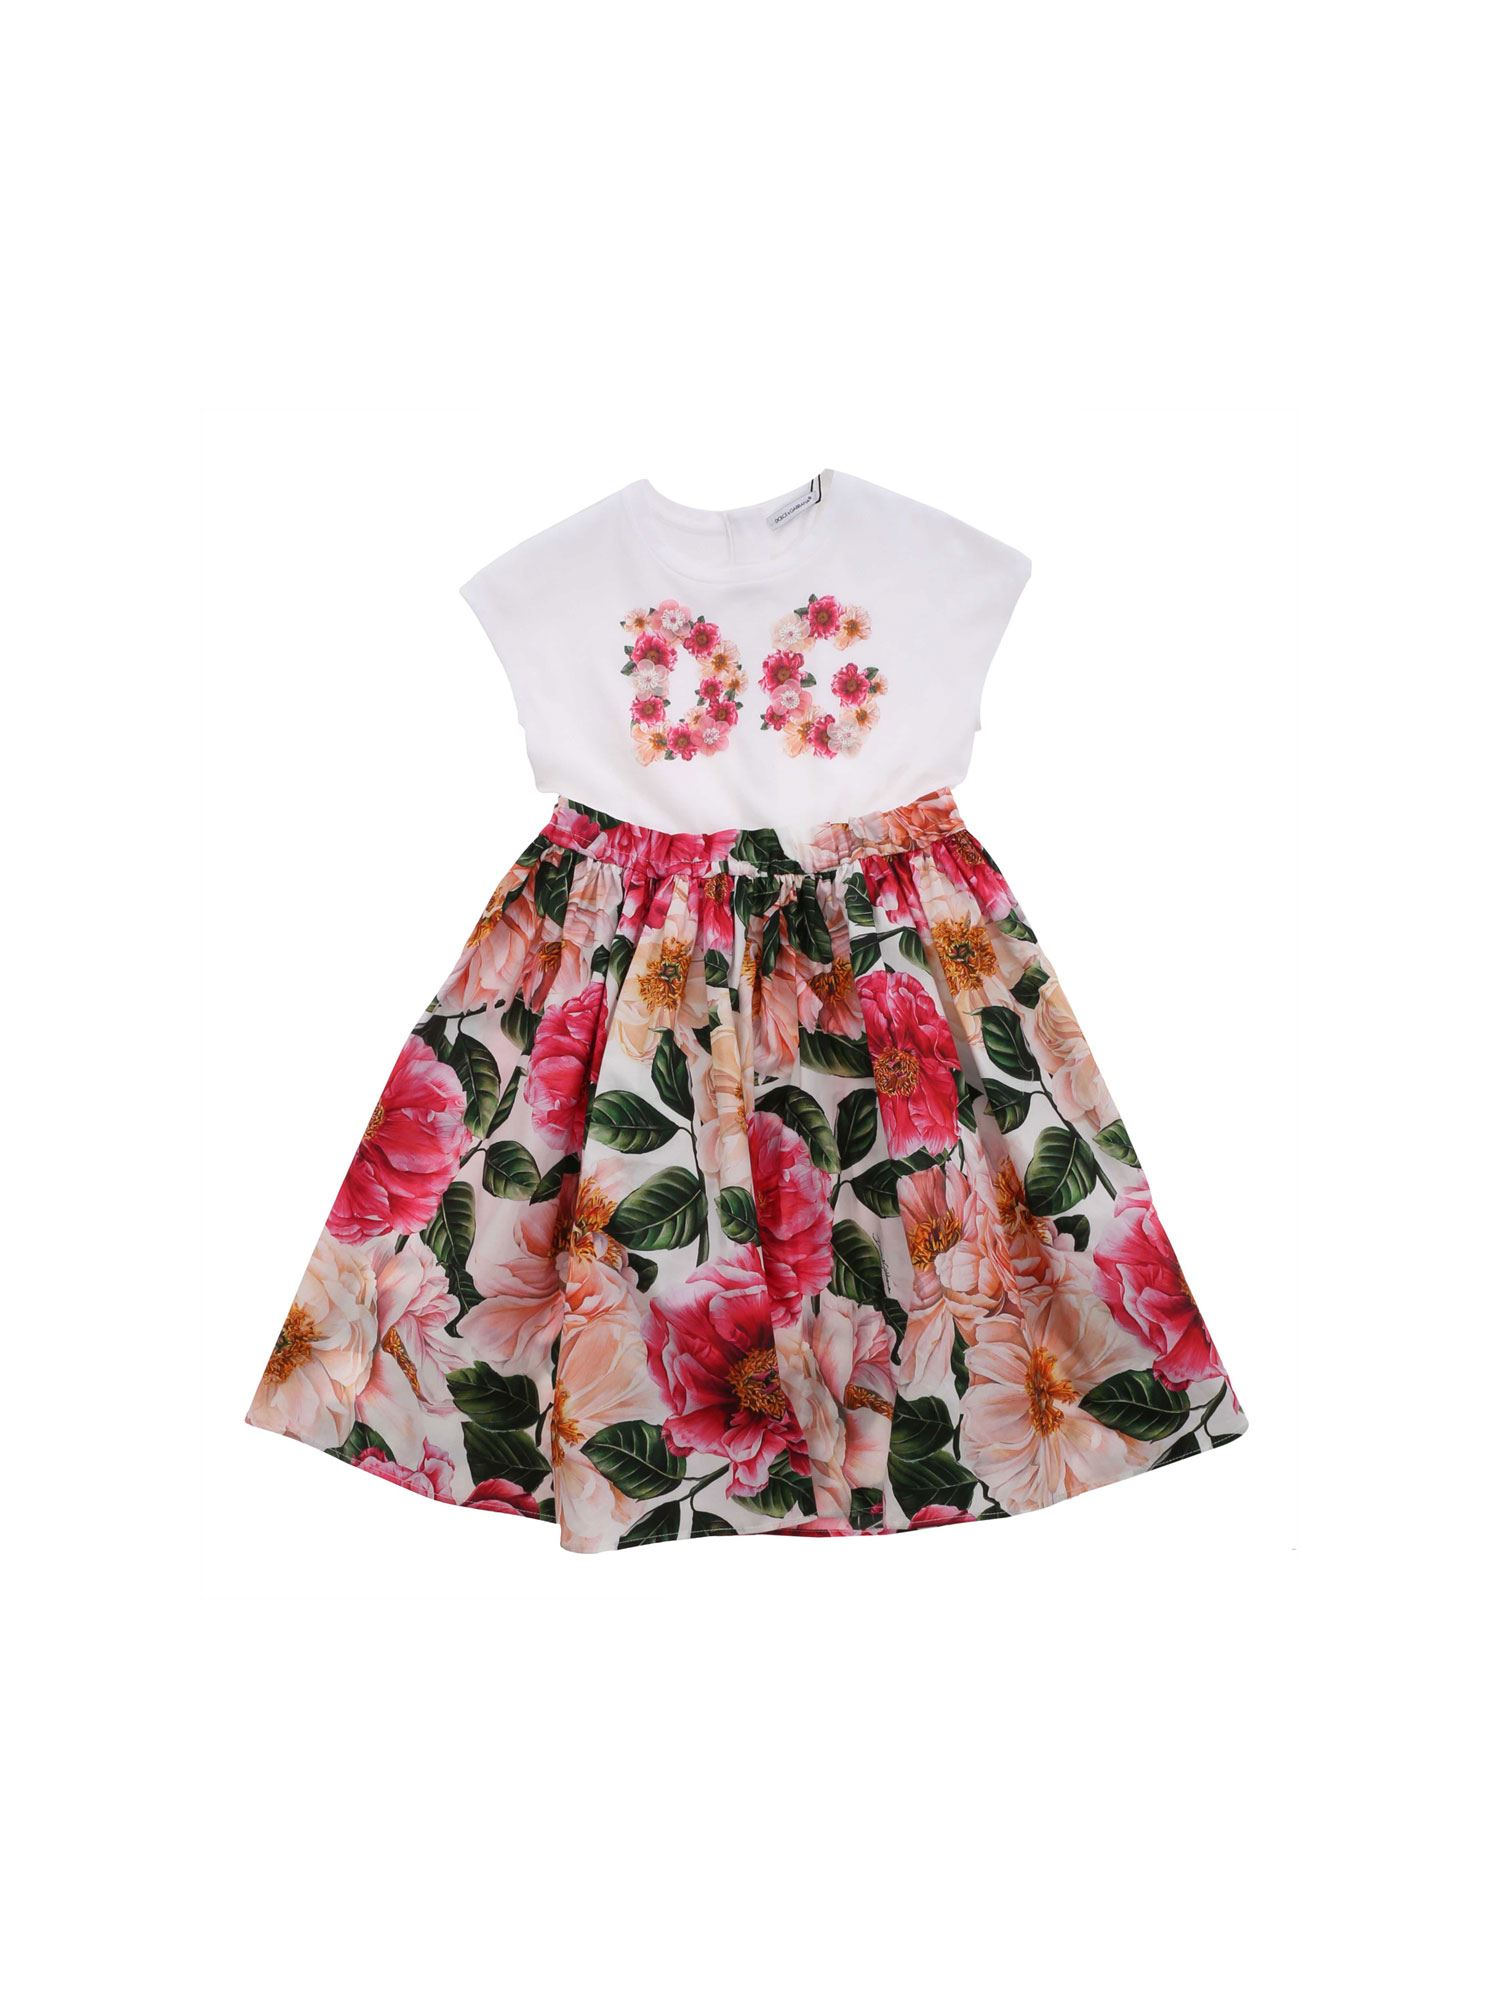 Dolce & Gabbana Jr FLORAL PRINT DRESS WHITE